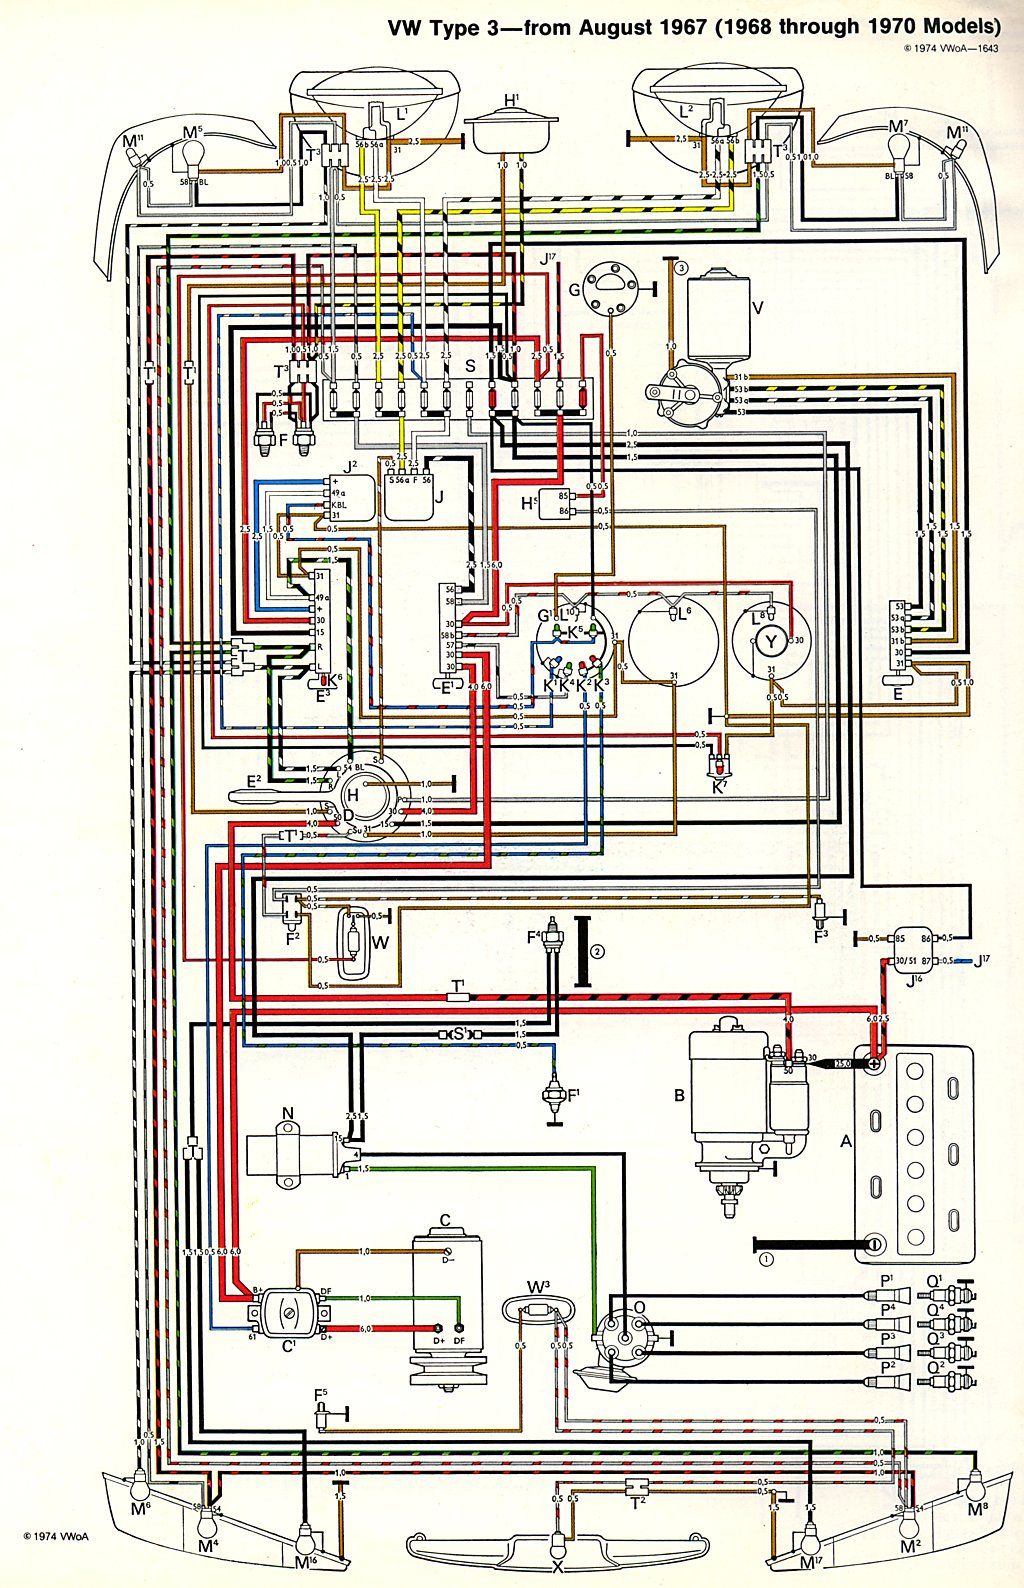 type3_6870 vw thing wiring diagram 1974 beetle heater diagram \u2022 wiring 1971 vw bus wiring diagram at nearapp.co